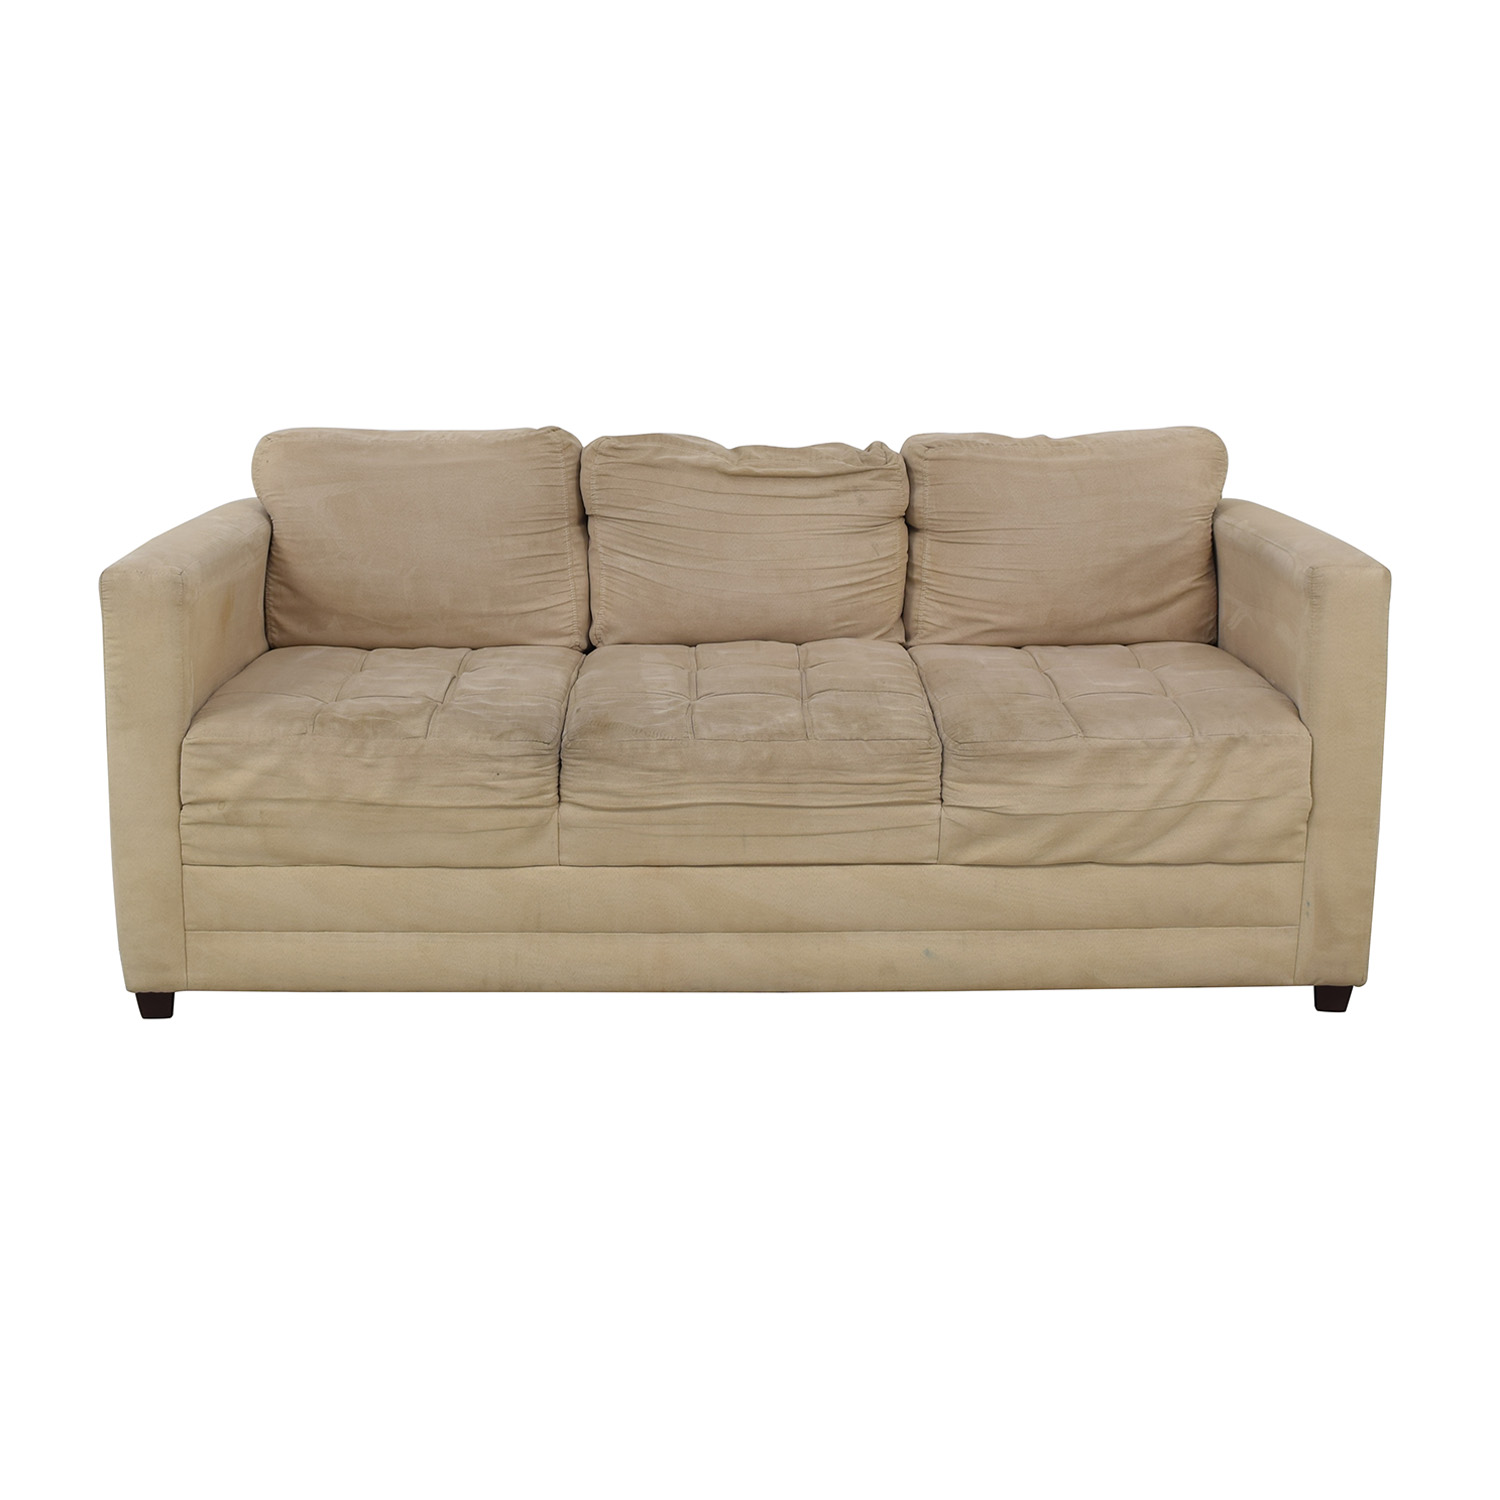 Gothic Cabinet Craft Gothic Cabinet Craft Beige Three-Cushion Couch nyc